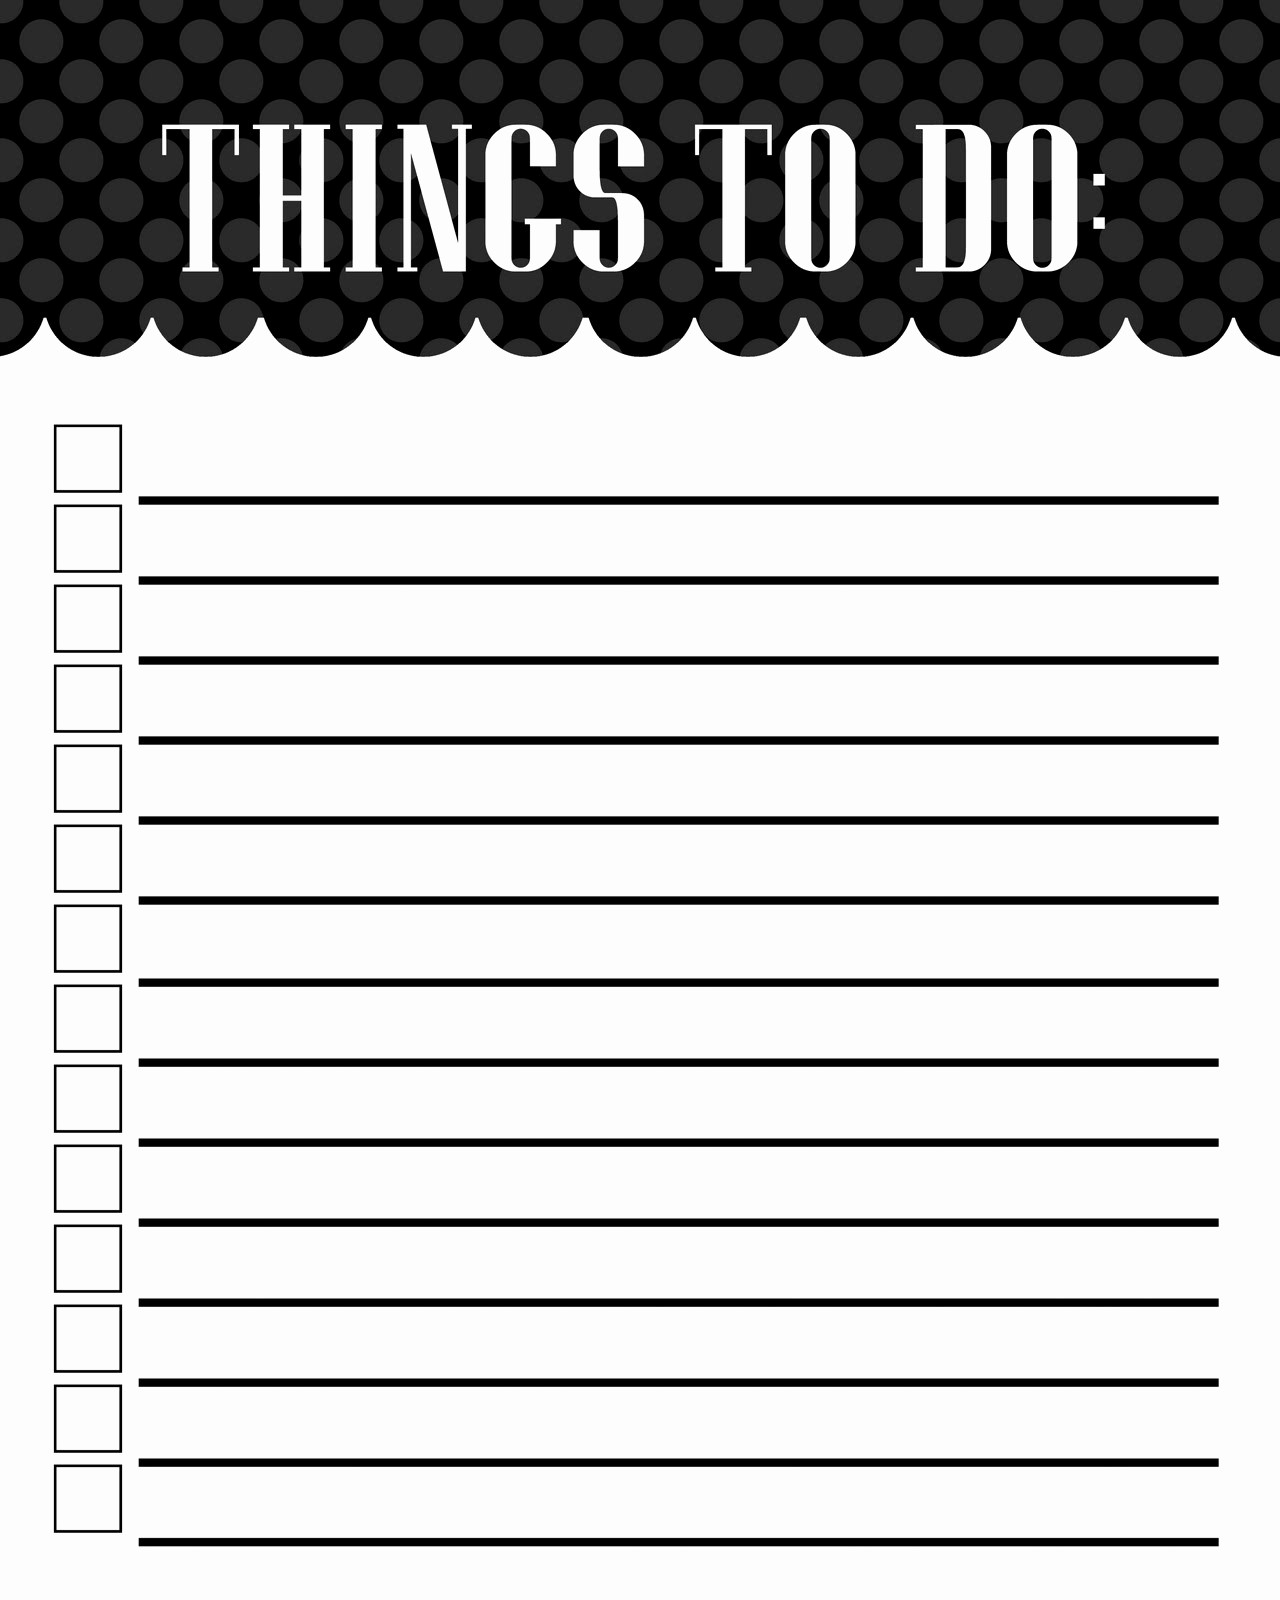 Printable Things to Do Lists Inspirational Free Blank Printable to Do List Templates Word Excel Pdf